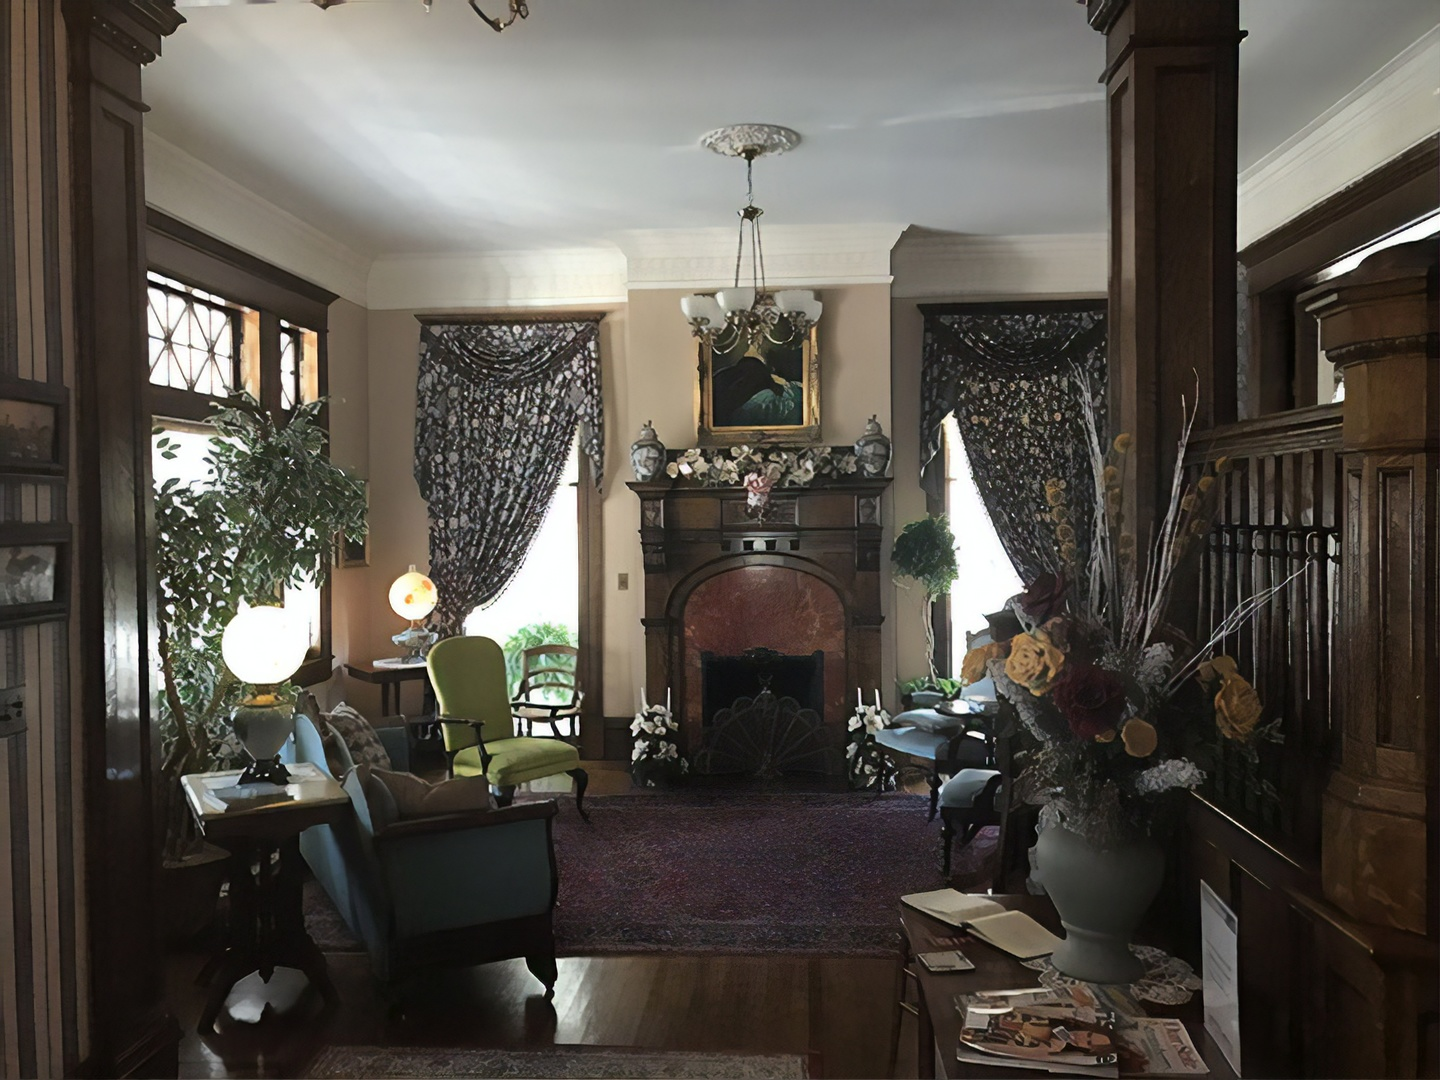 A living room filled with furniture and a large window at Rosehill Inn Bed & Breakfast.